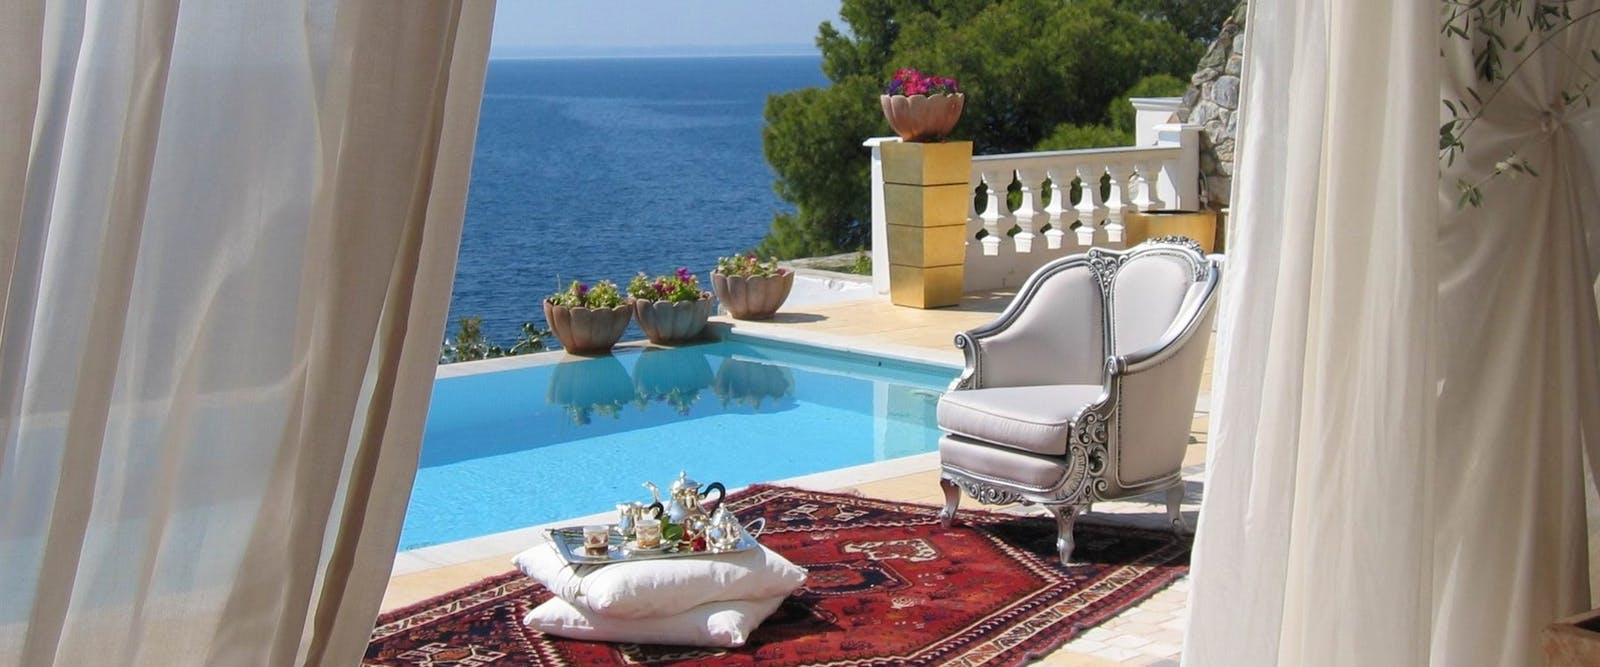 Private Pool at Danai Beach Resort & Villas, Halkidiki, Greece